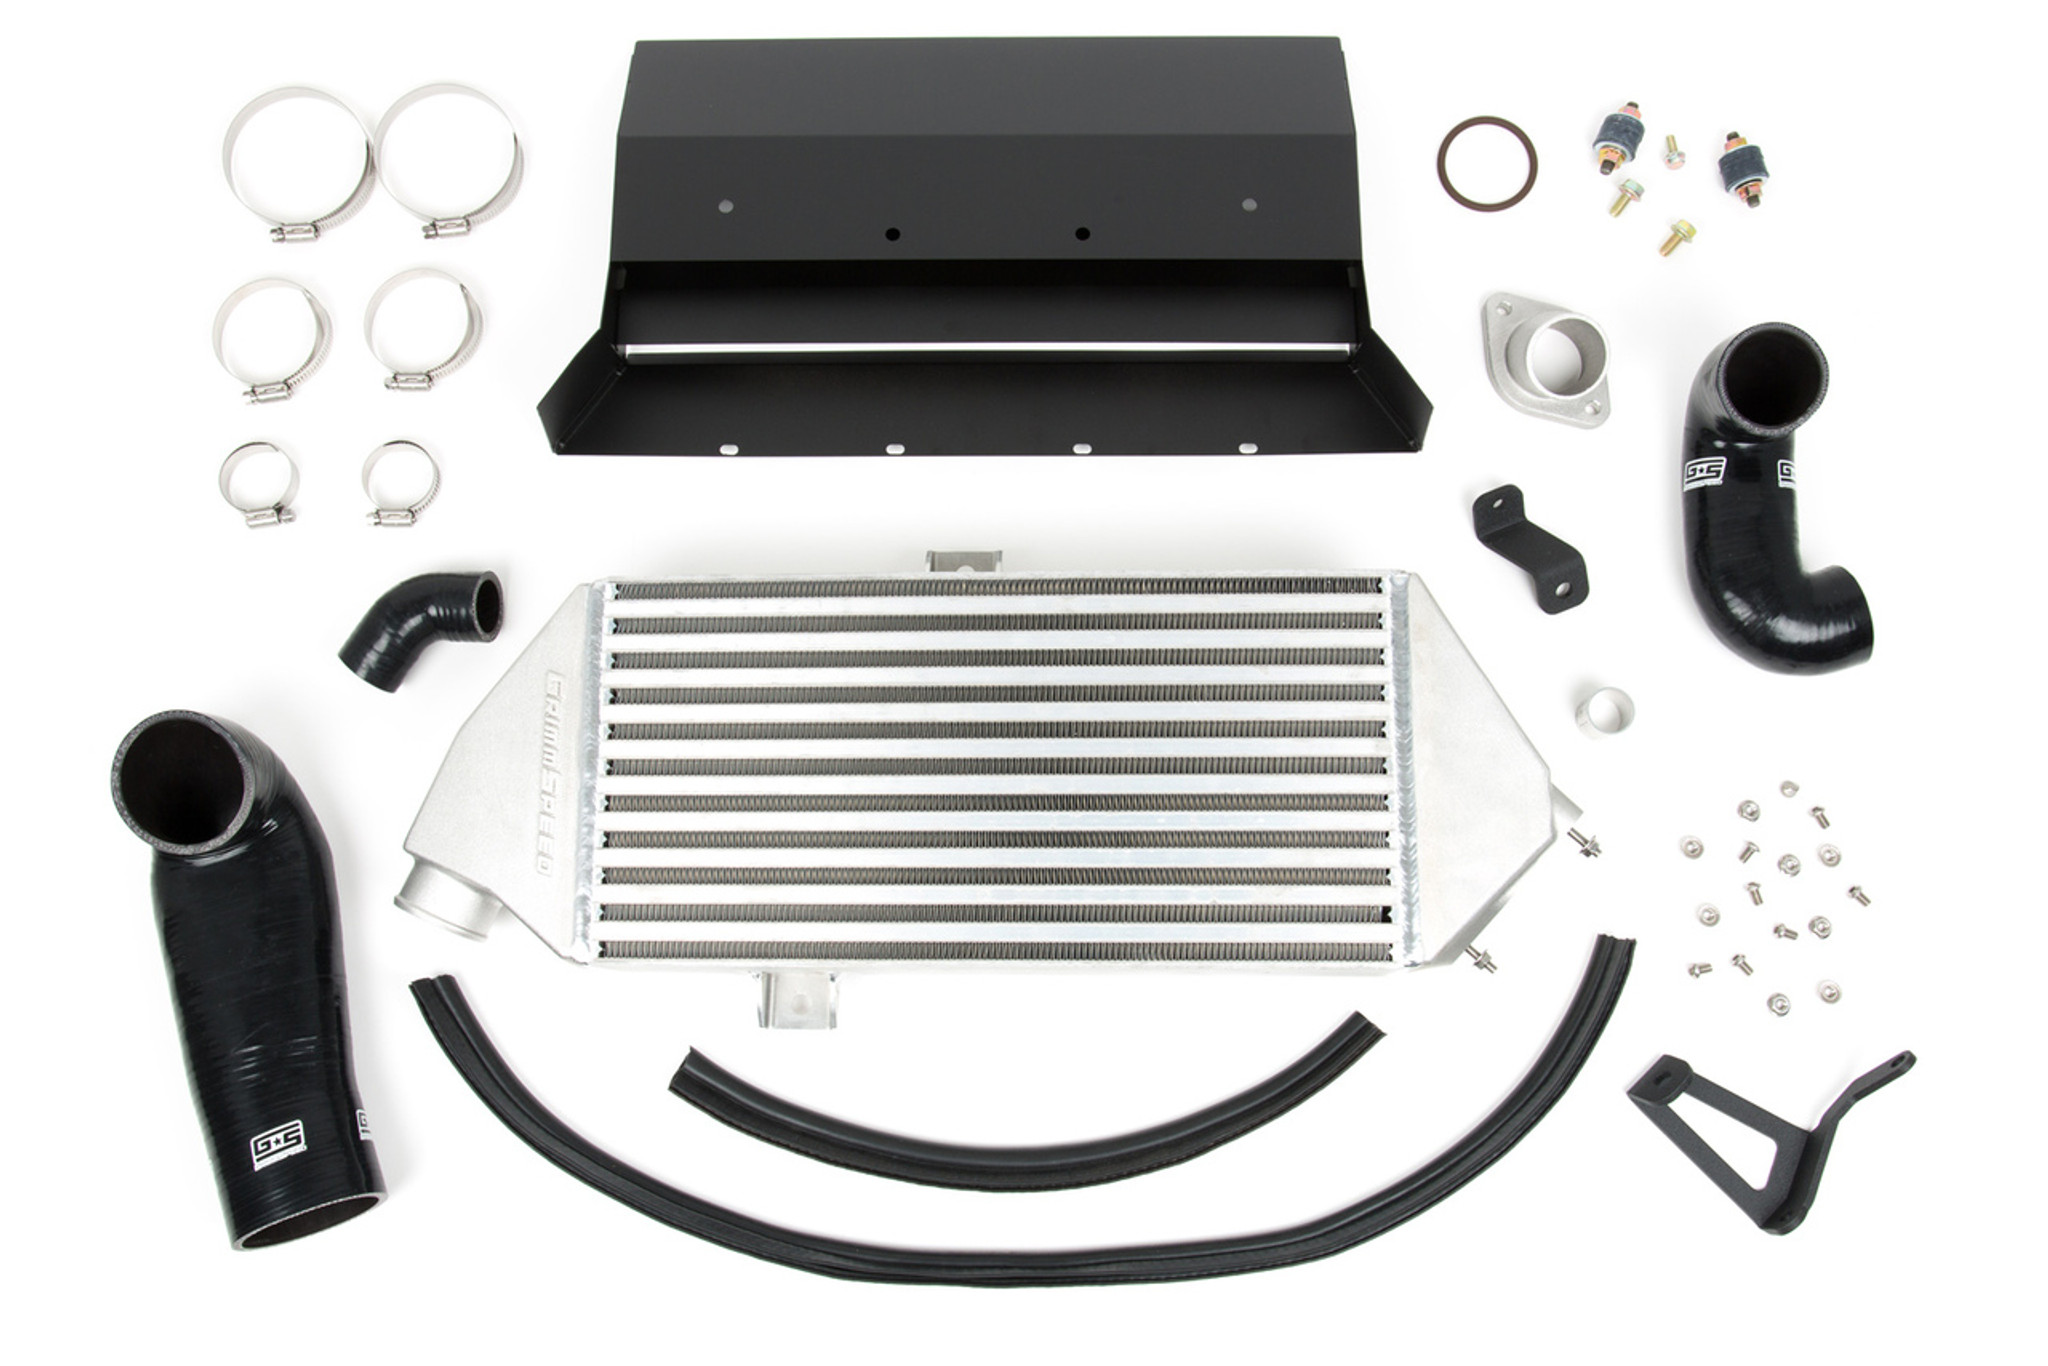 hight resolution of top mount intercooler kit subaru 08 14 wrx 05 09 legacy gt diagram of 05 subaru legacy gt engine